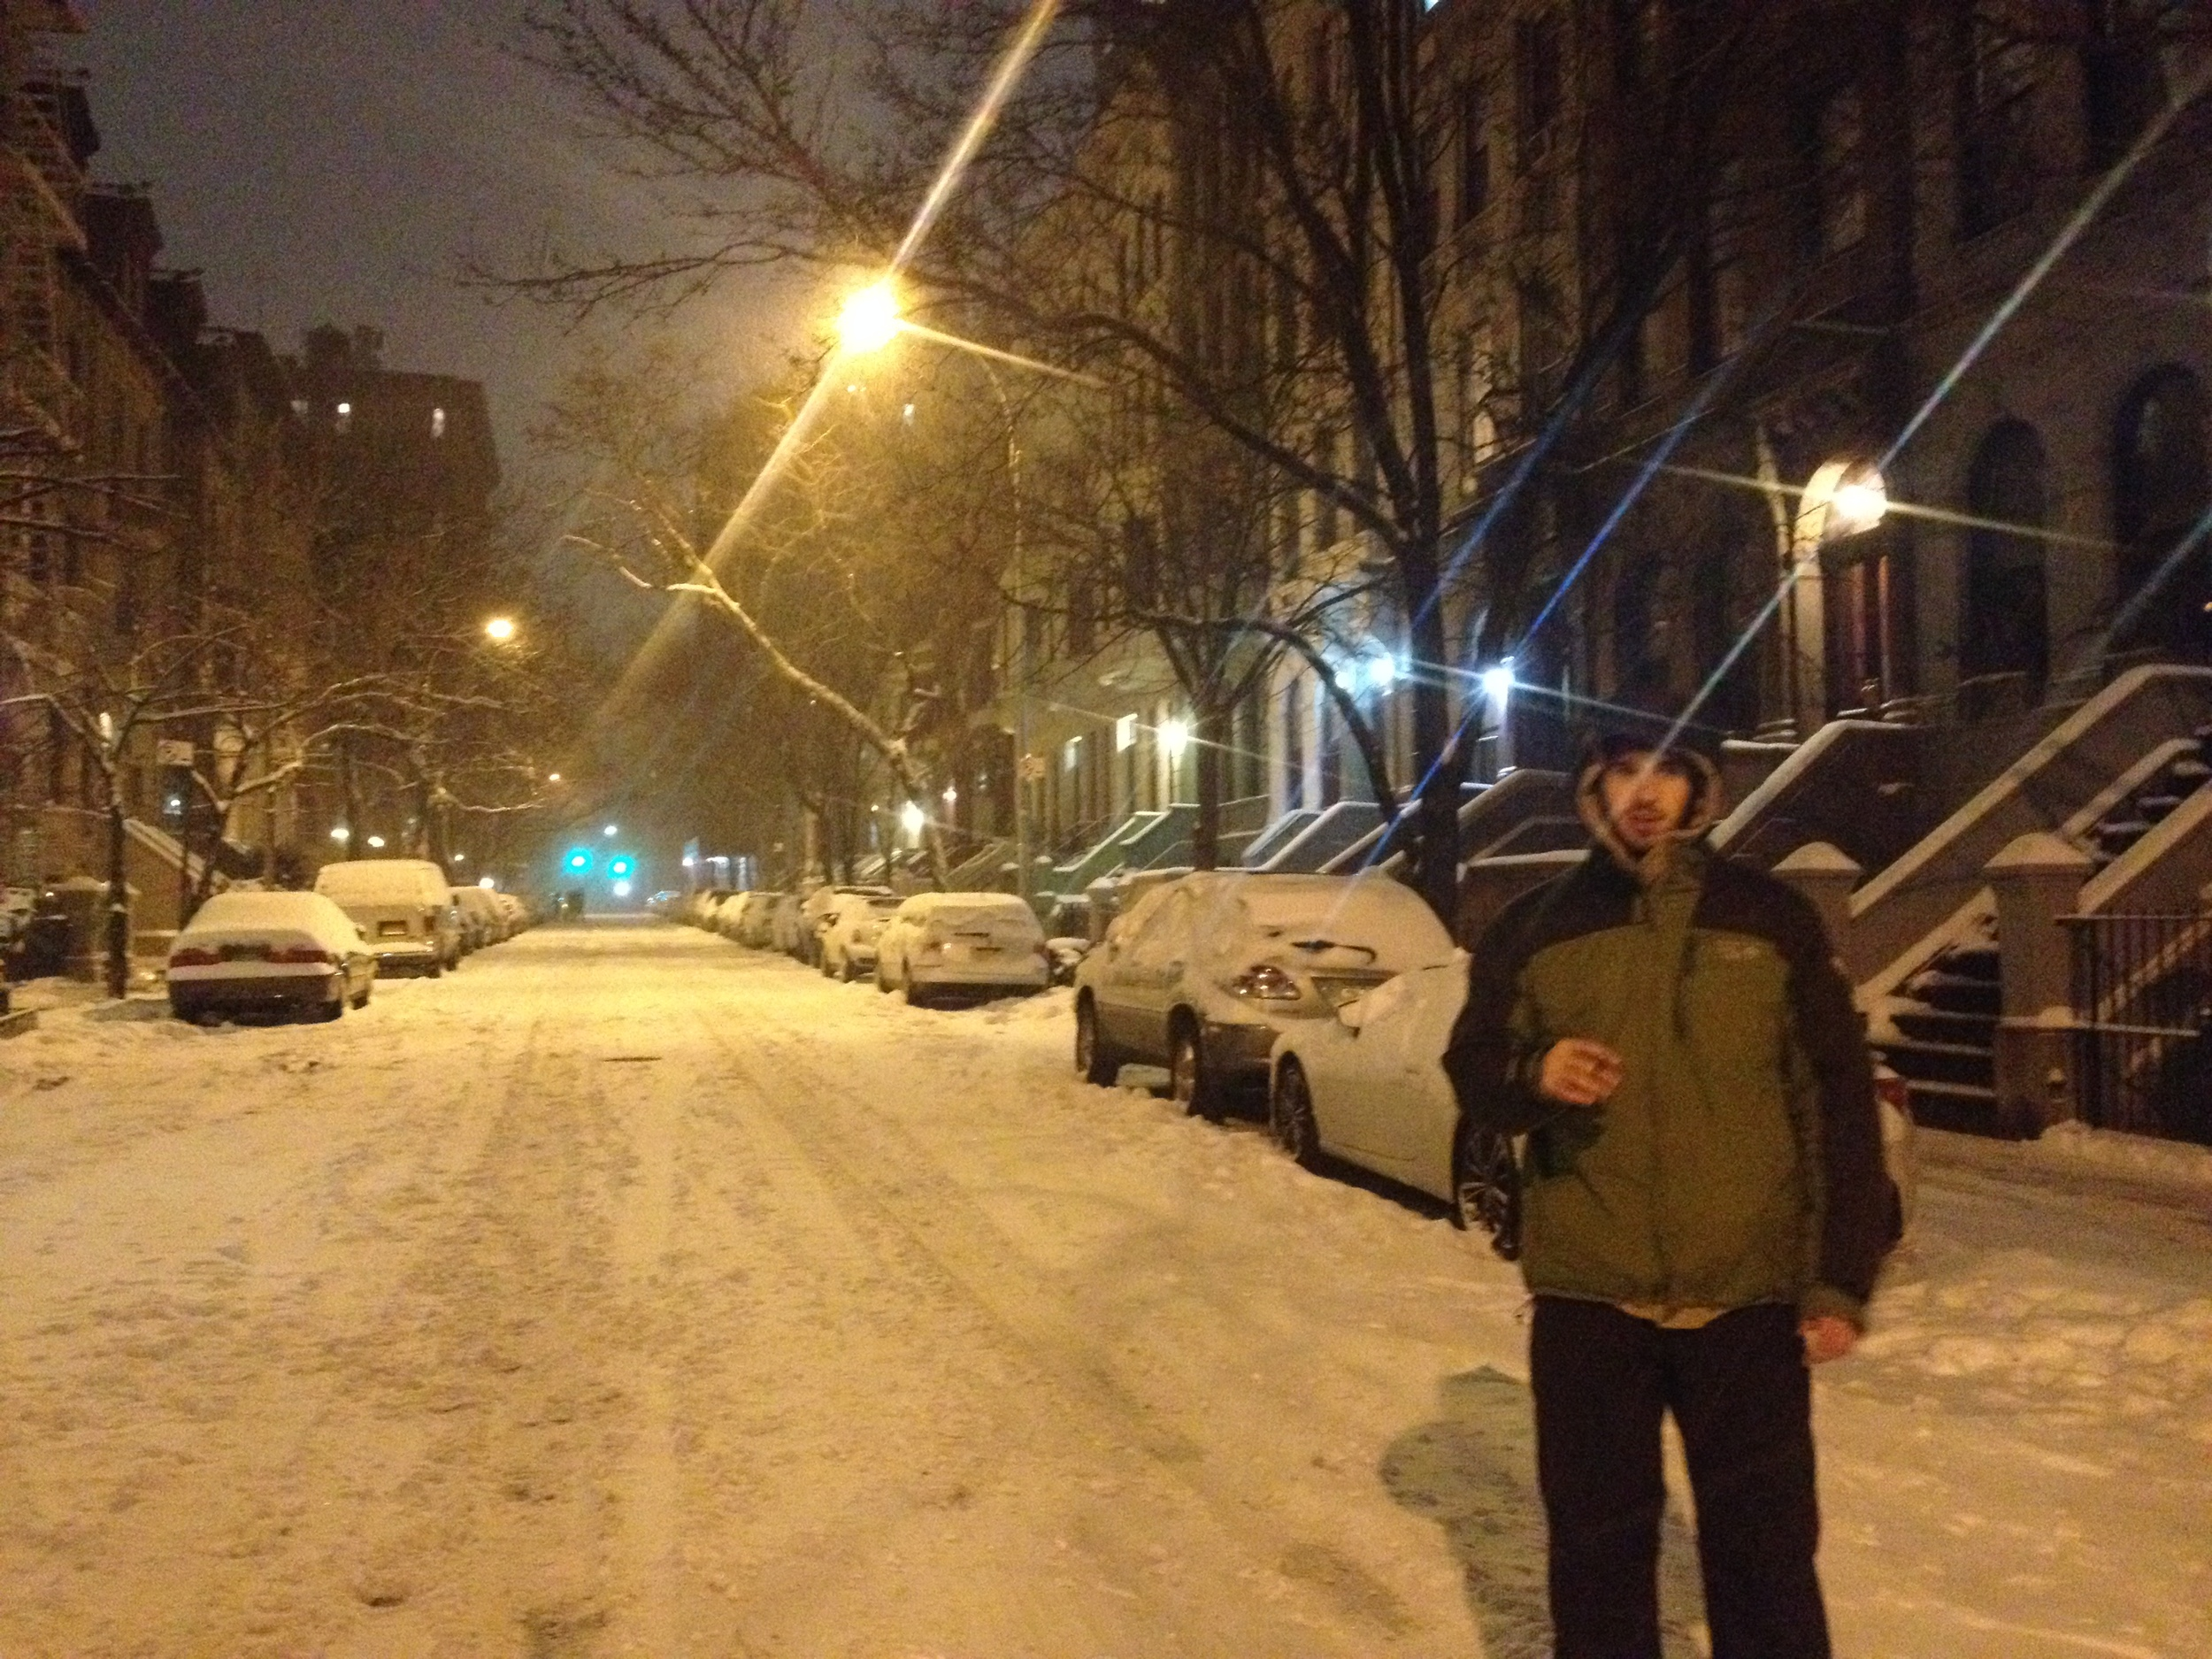 On a midnight walk through the empty,snow-covered streets in my neighborhood.